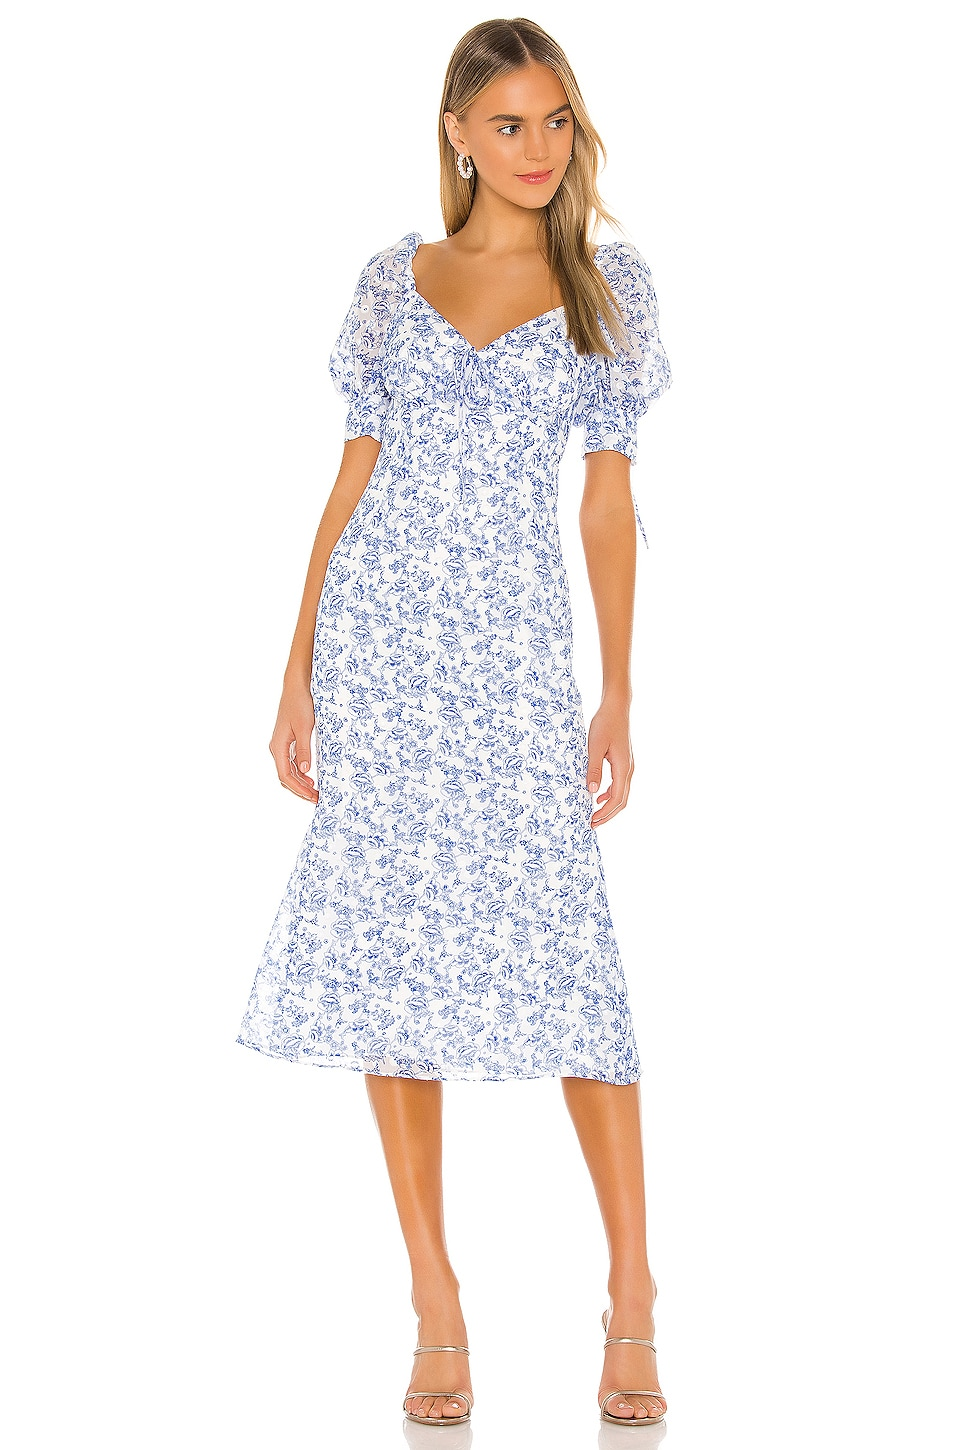 Tularosa Liam Dress in Country Blue Toile